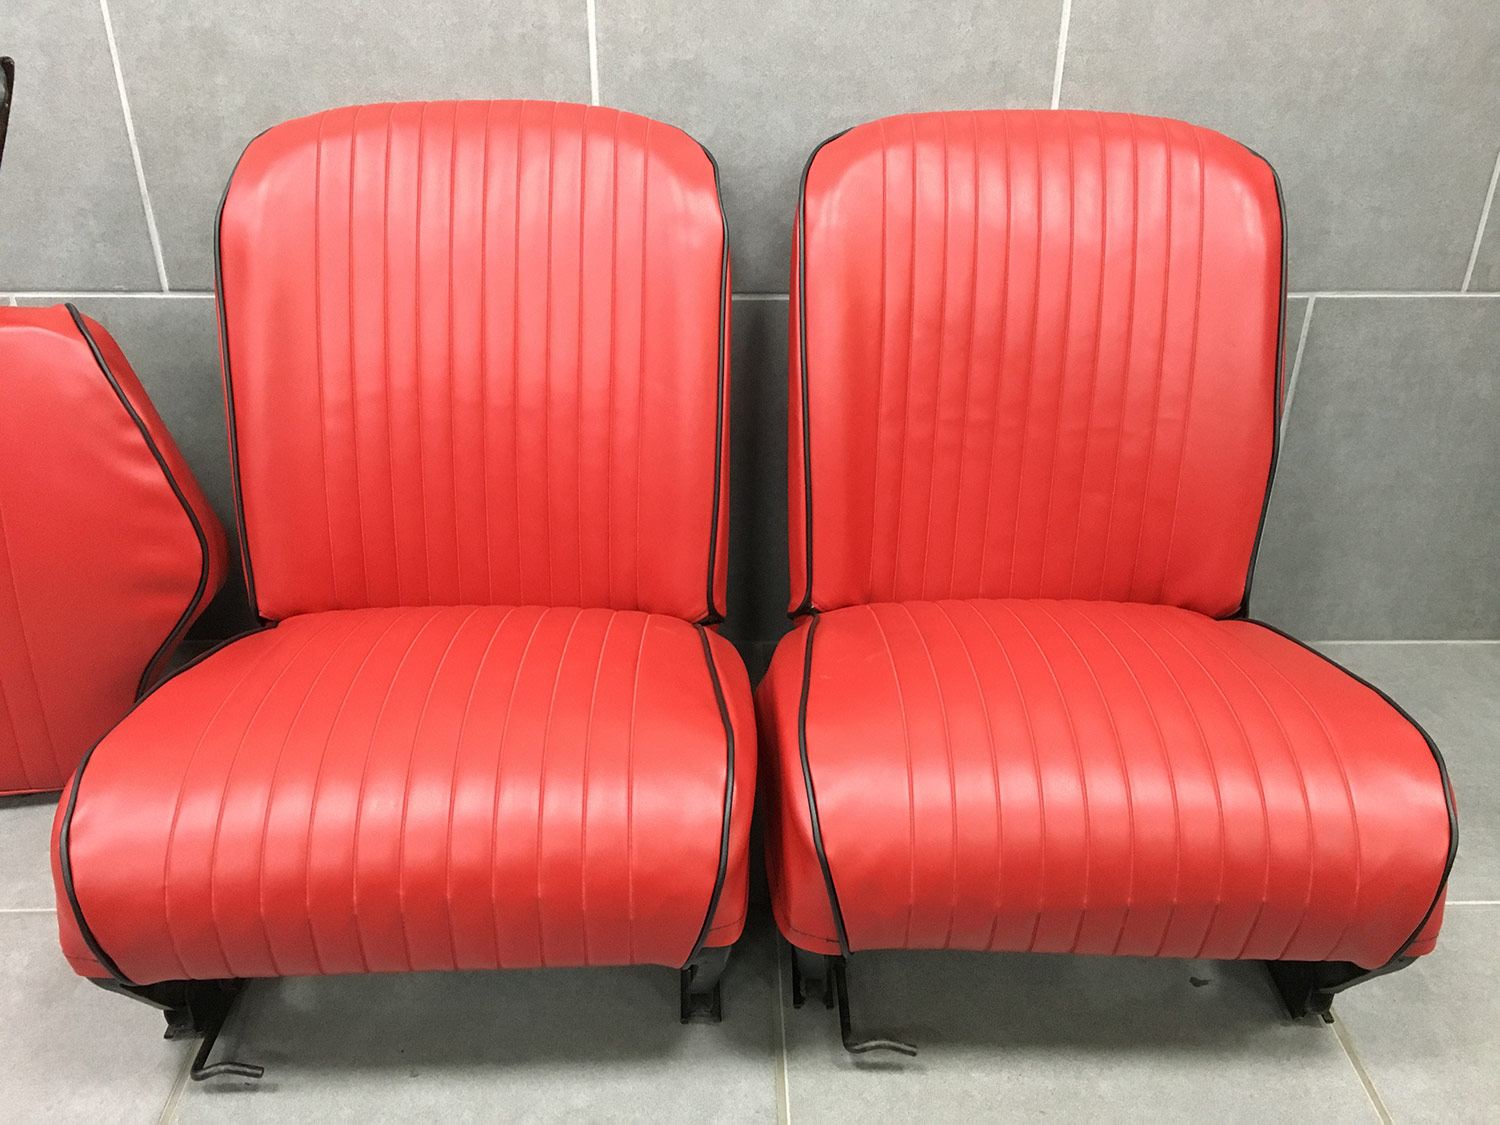 Fiat 500L Seats Re Covered